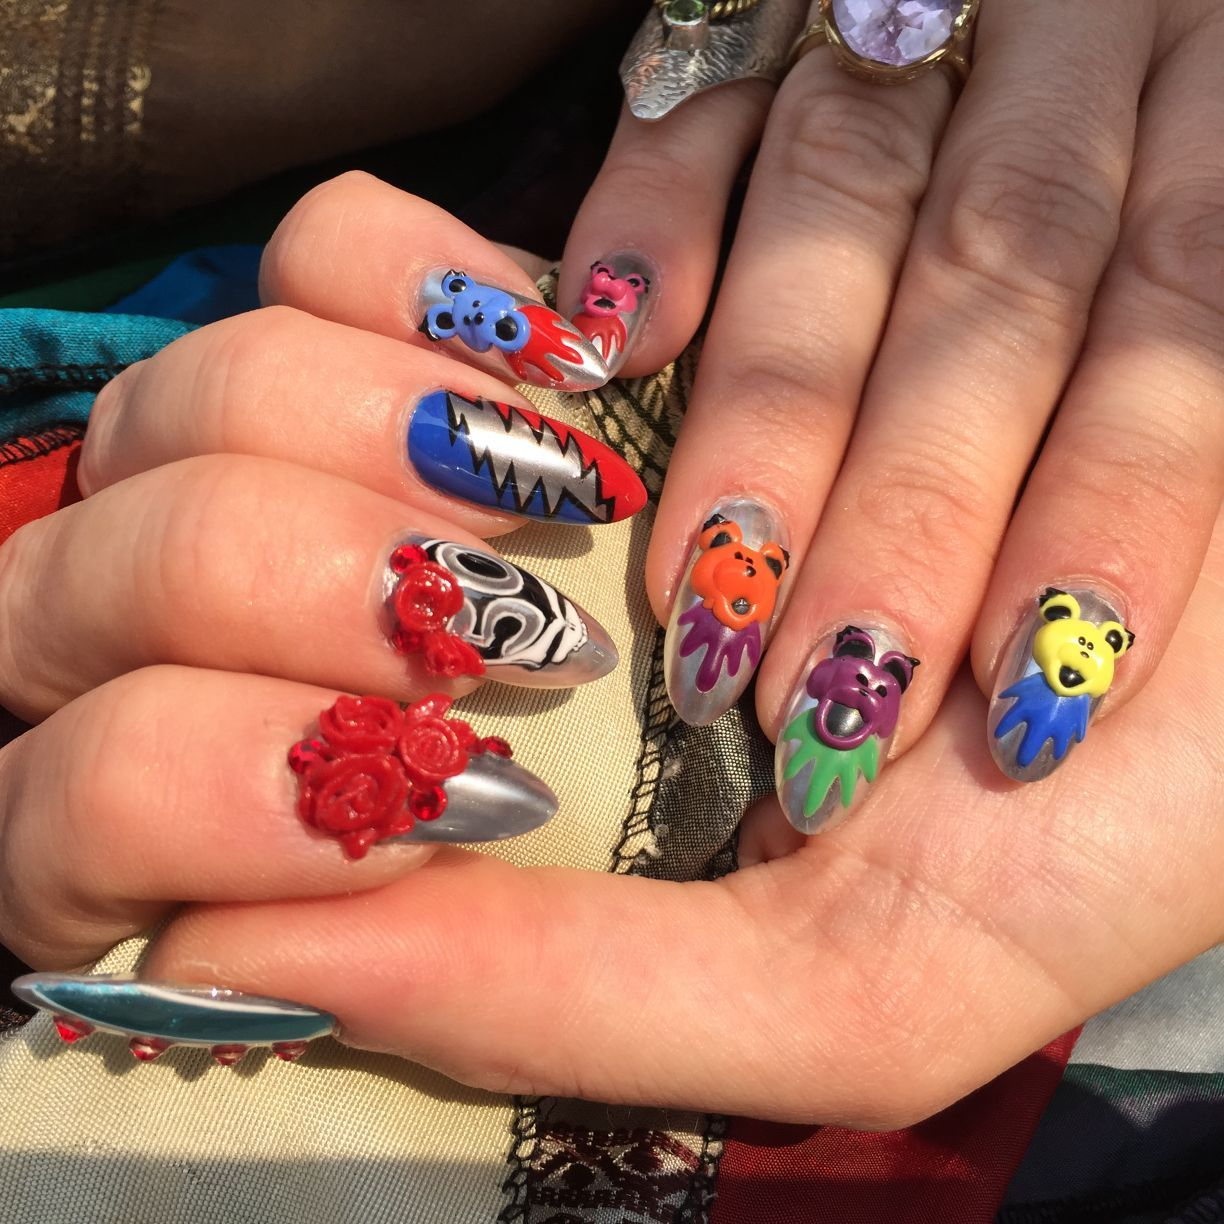 At Her Fingertips Crown Point Nail Salon Artist Taps Talent For Gems And Fine Designs Lifestyles Nwitimes